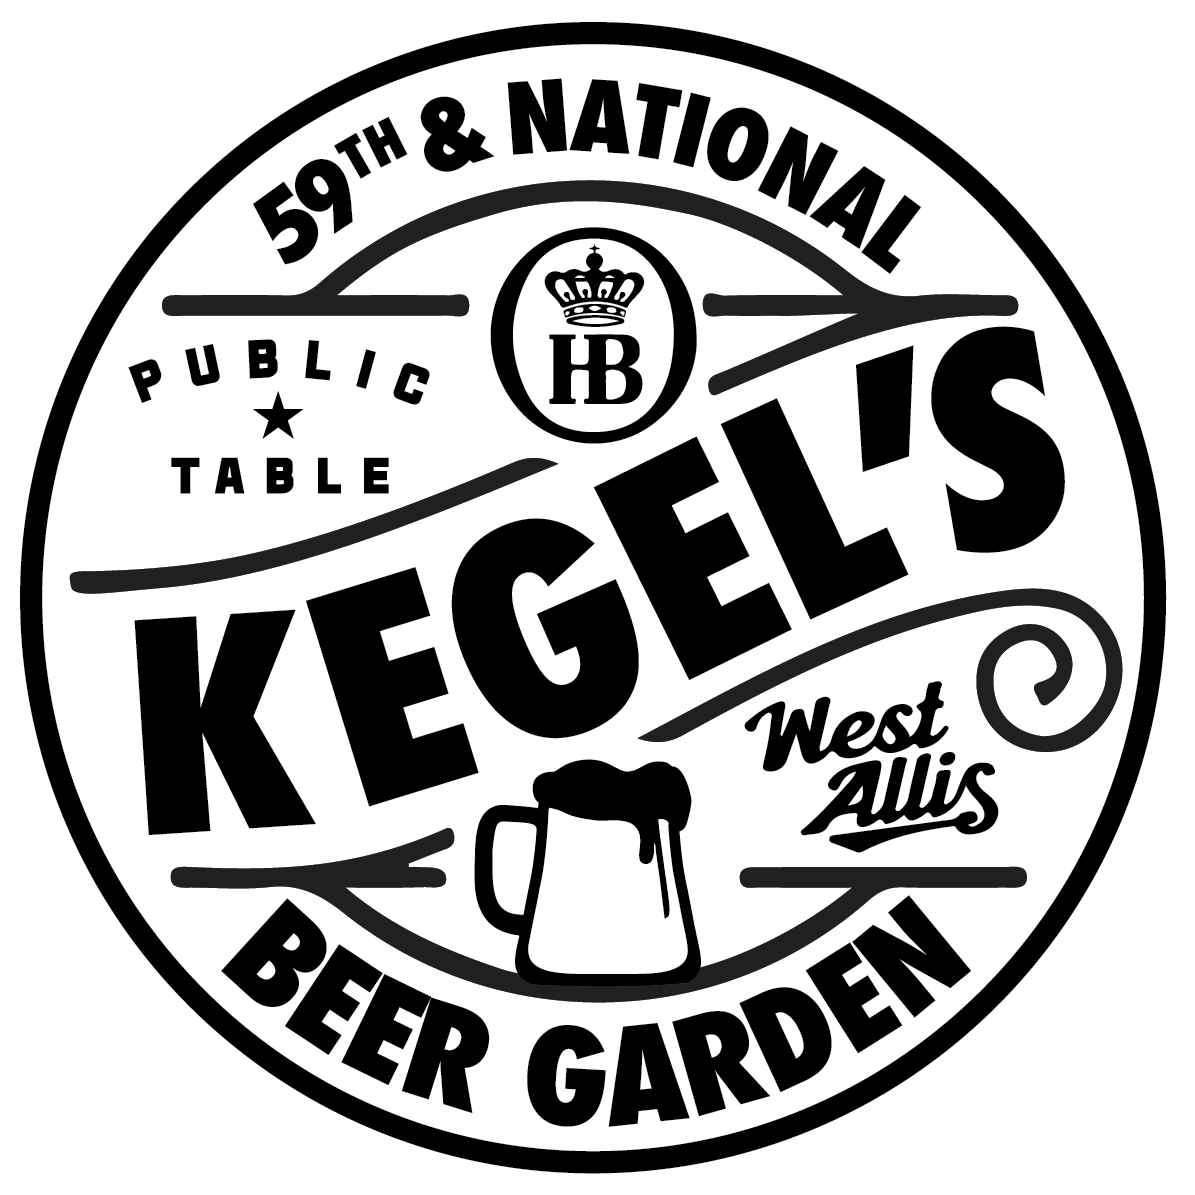 OPENING MEMORIAL DAY WEEKEND! - Join us May 24,25, & 26th to Celebrate the 95th Year of Kegel's Inn on Memorial day weekend.